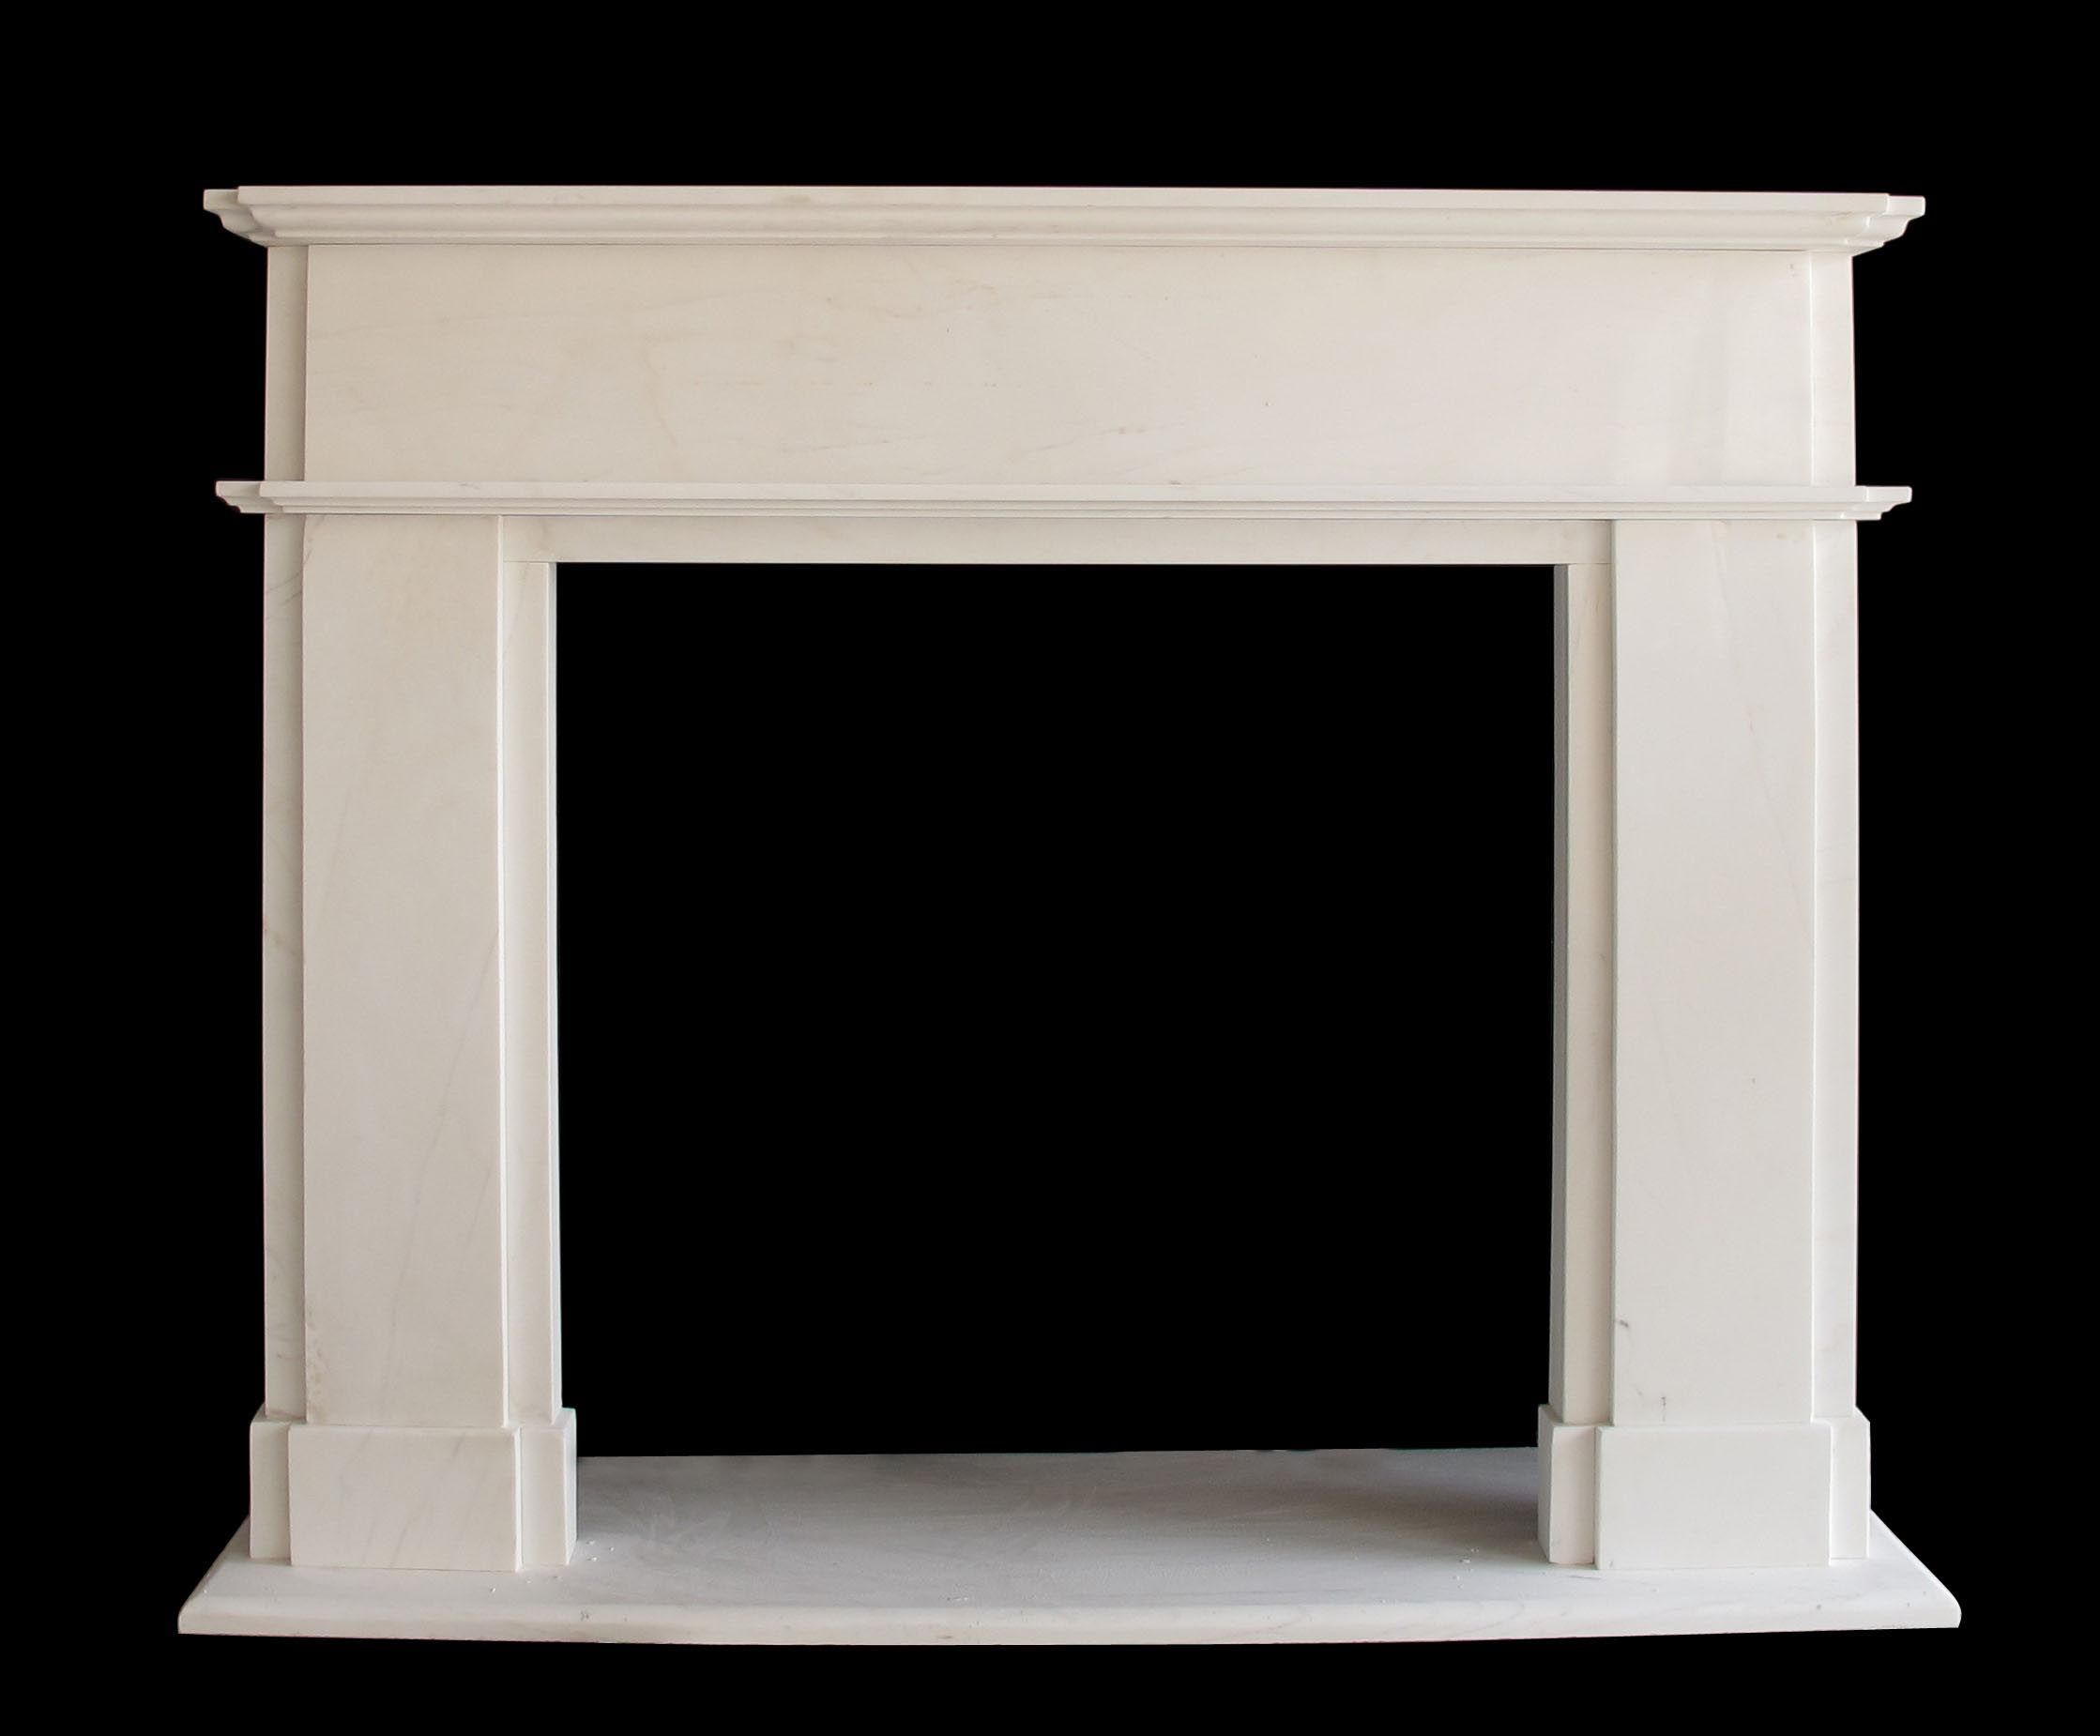 Fireplace Surround Design Ideas modern fireplace surrounds moving to modern the evolution of the gas fireplace Traditional Marble Mantel Sale Cheap Fireplace